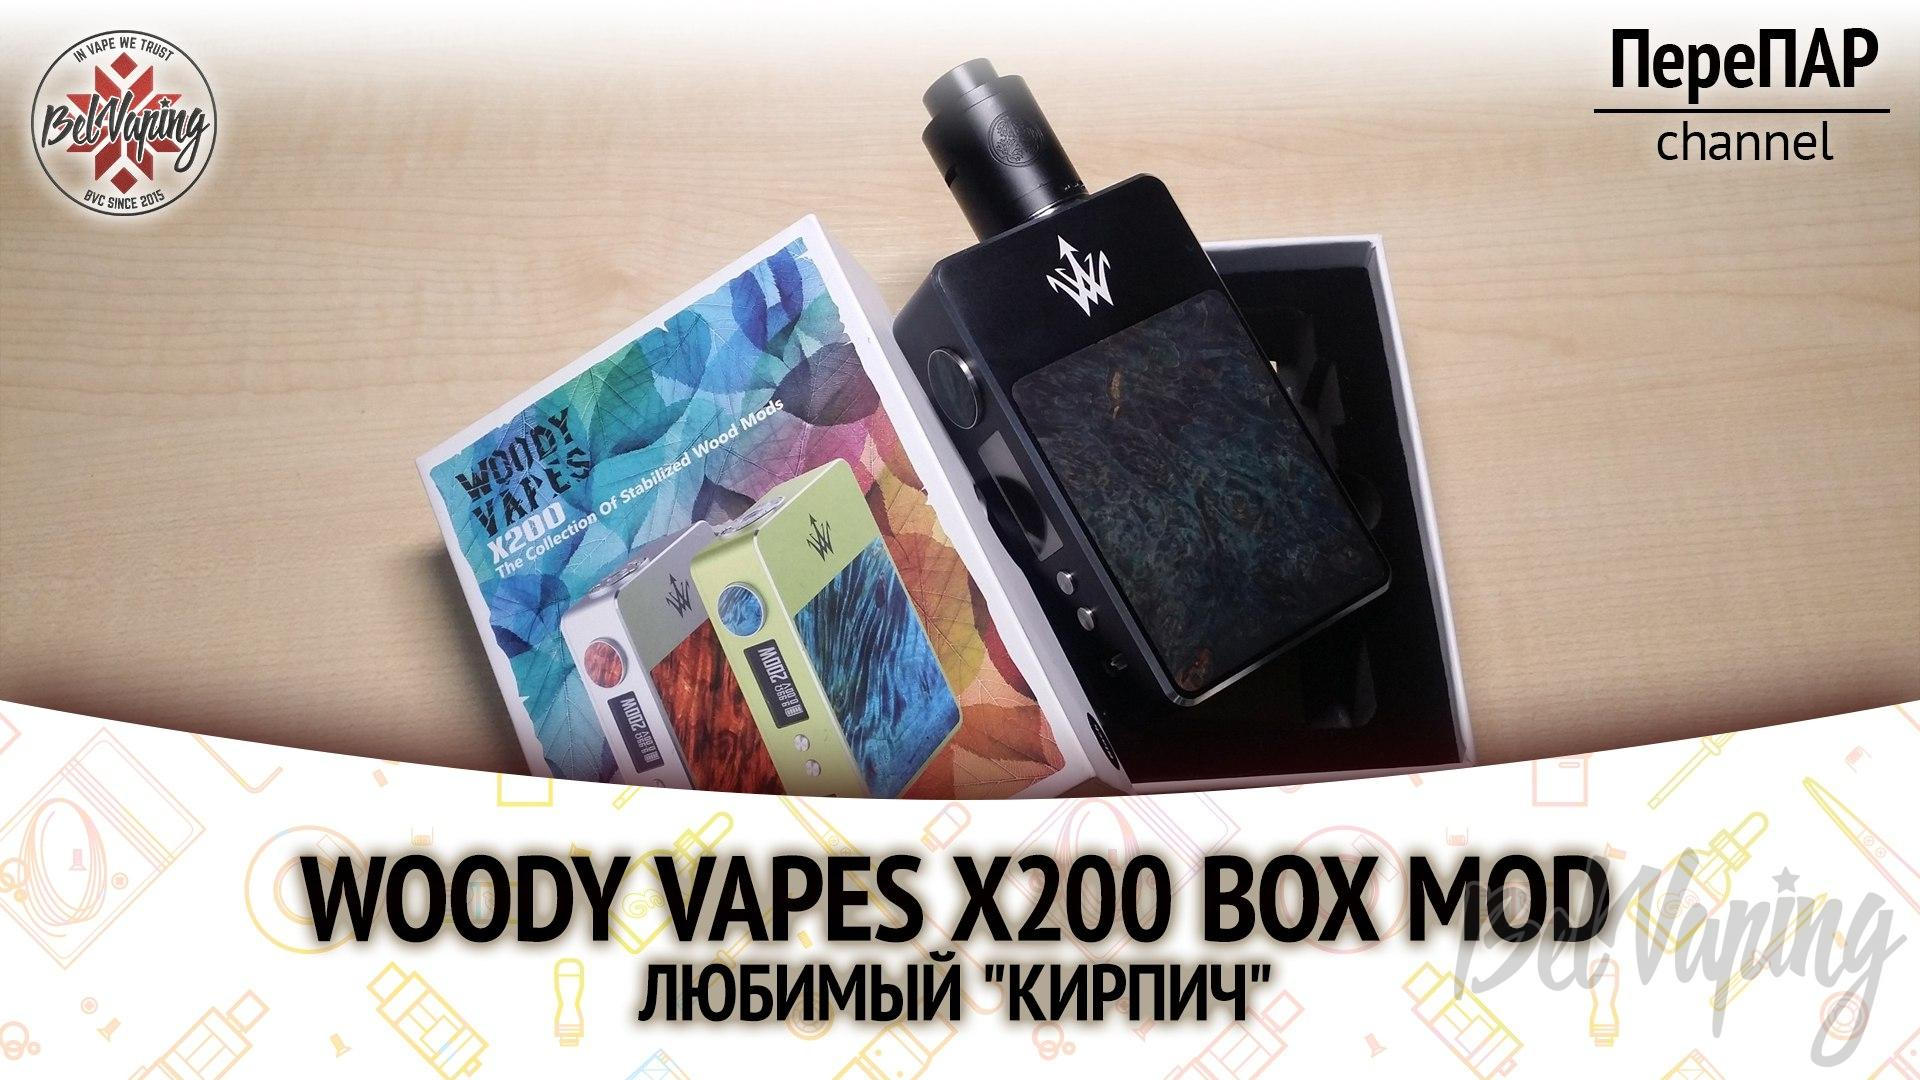 Обзор боксмода Woody Vapes X200